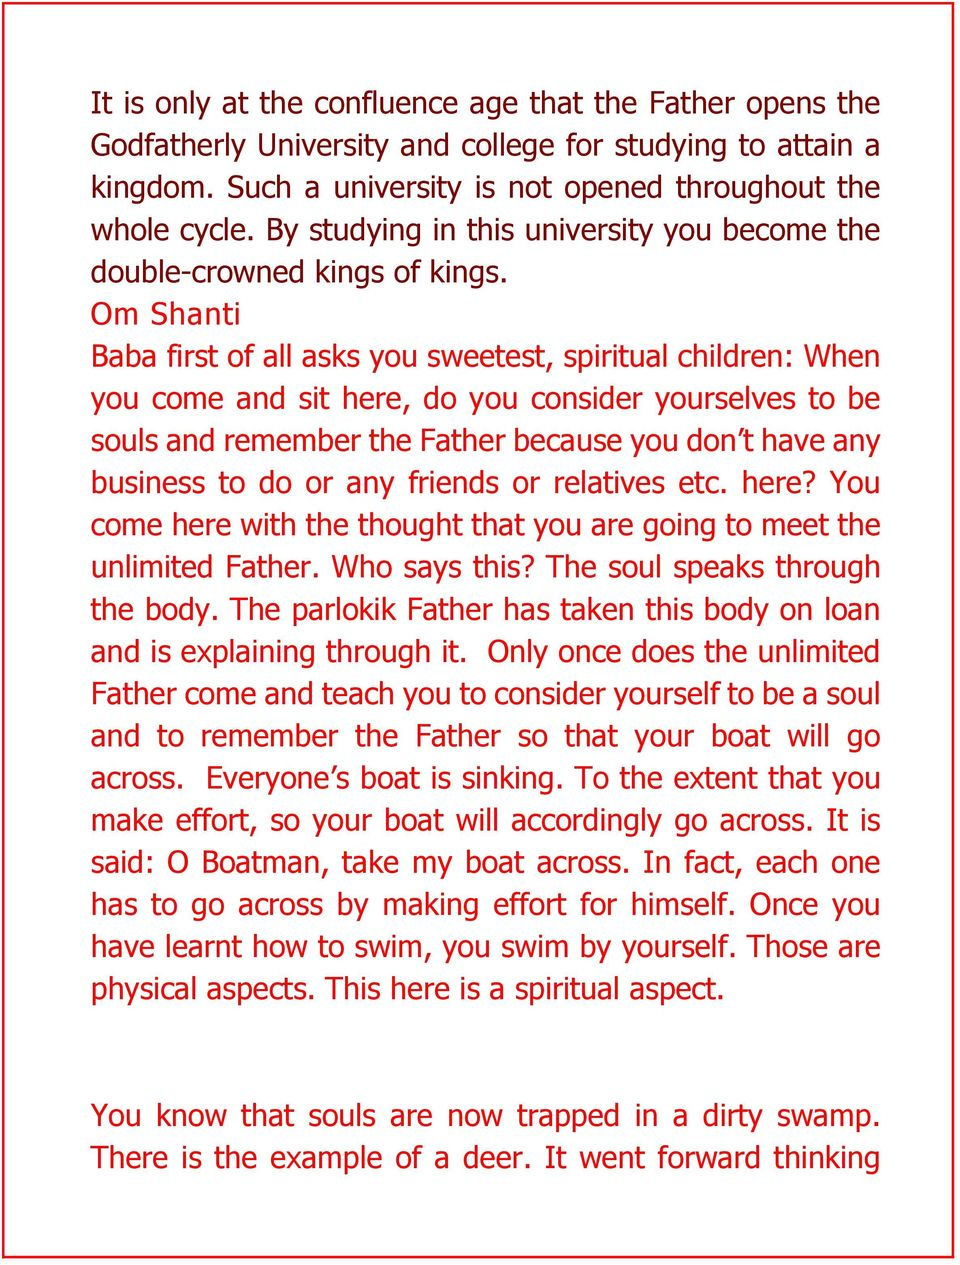 Om Shanti Baba first of all asks you sweetest, spiritual children: When you come and sit here, do you consider yourselves to be souls and remember the Father because you don t have any business to do